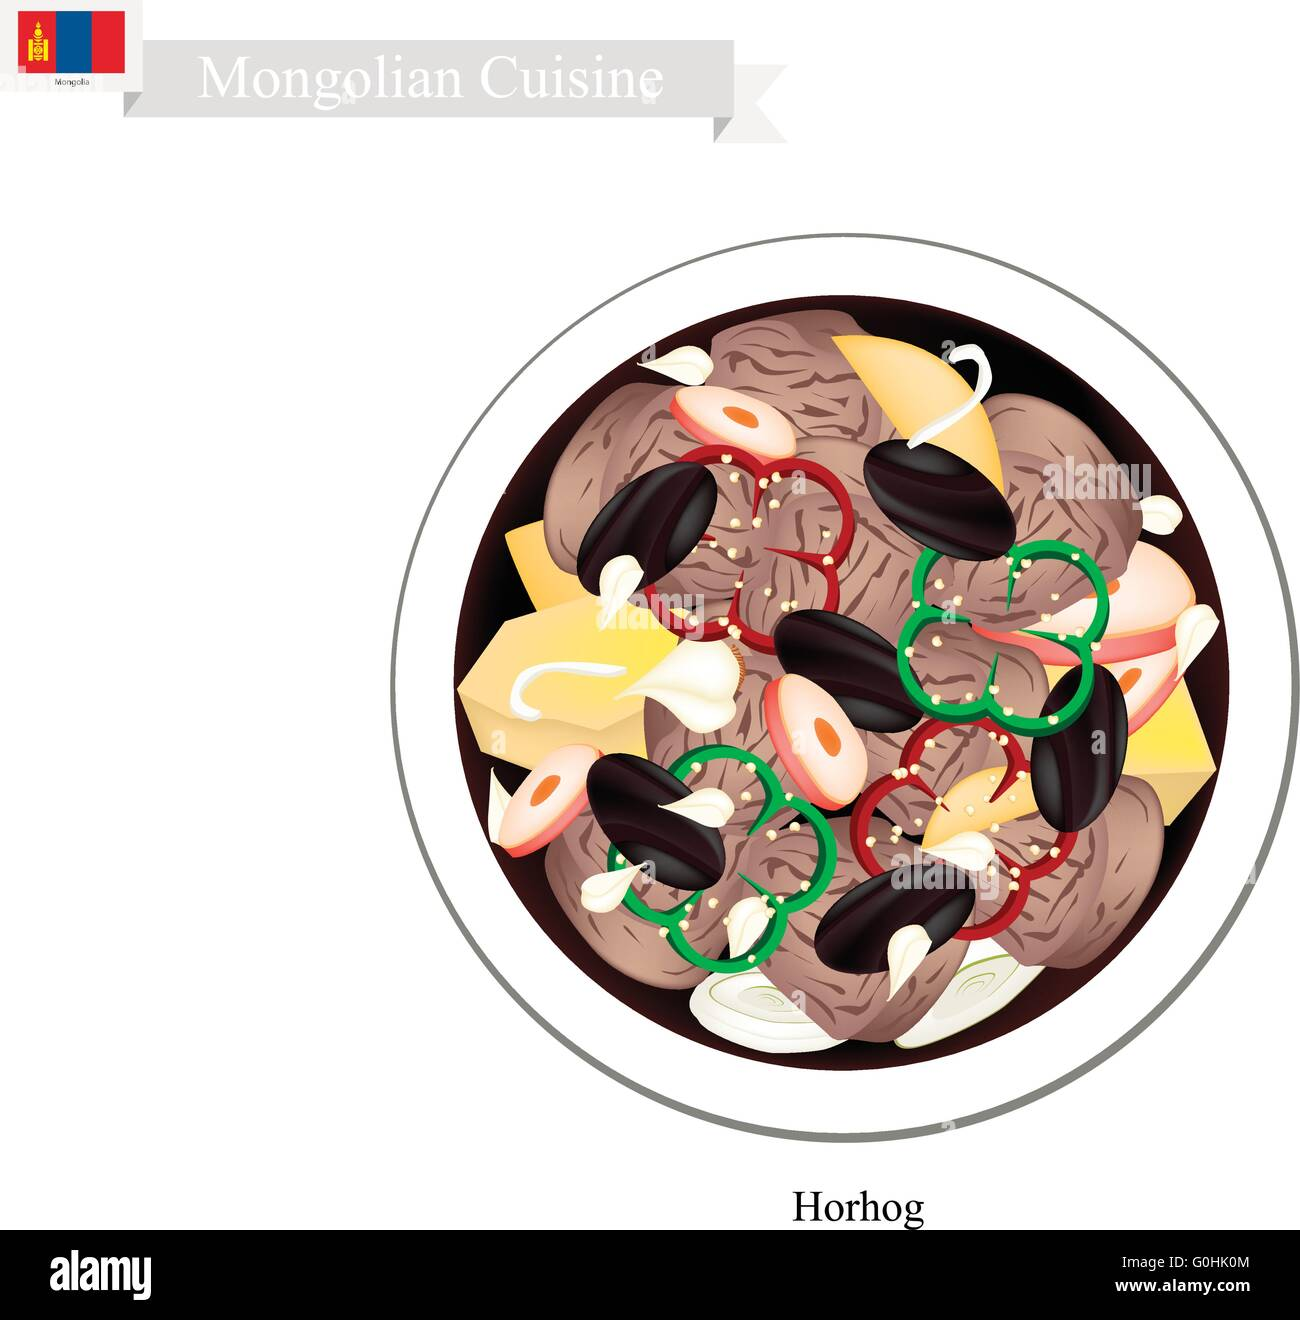 Mongolian Cuisine, Horhog or Meat Barbecue with Carrots, Cabbage and Potatoes Cooked with Hot Stones. One of Most - Stock Vector